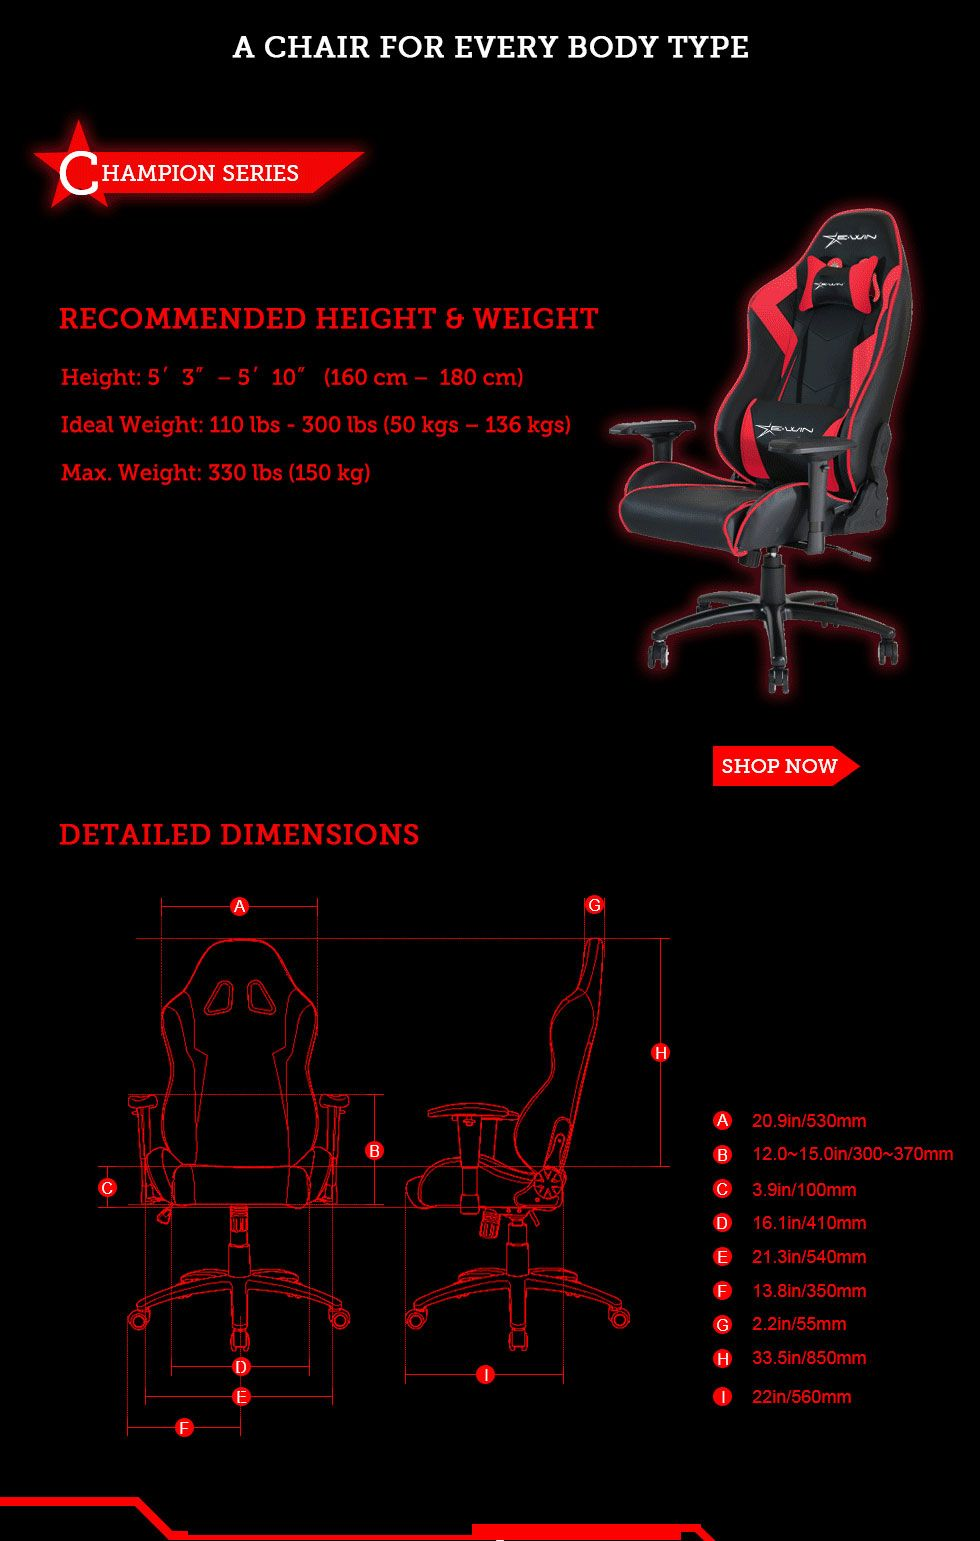 Vouwstoel 150 Kg.Find The Perfect Gaming Chair To Fit Your Body Size And Weight